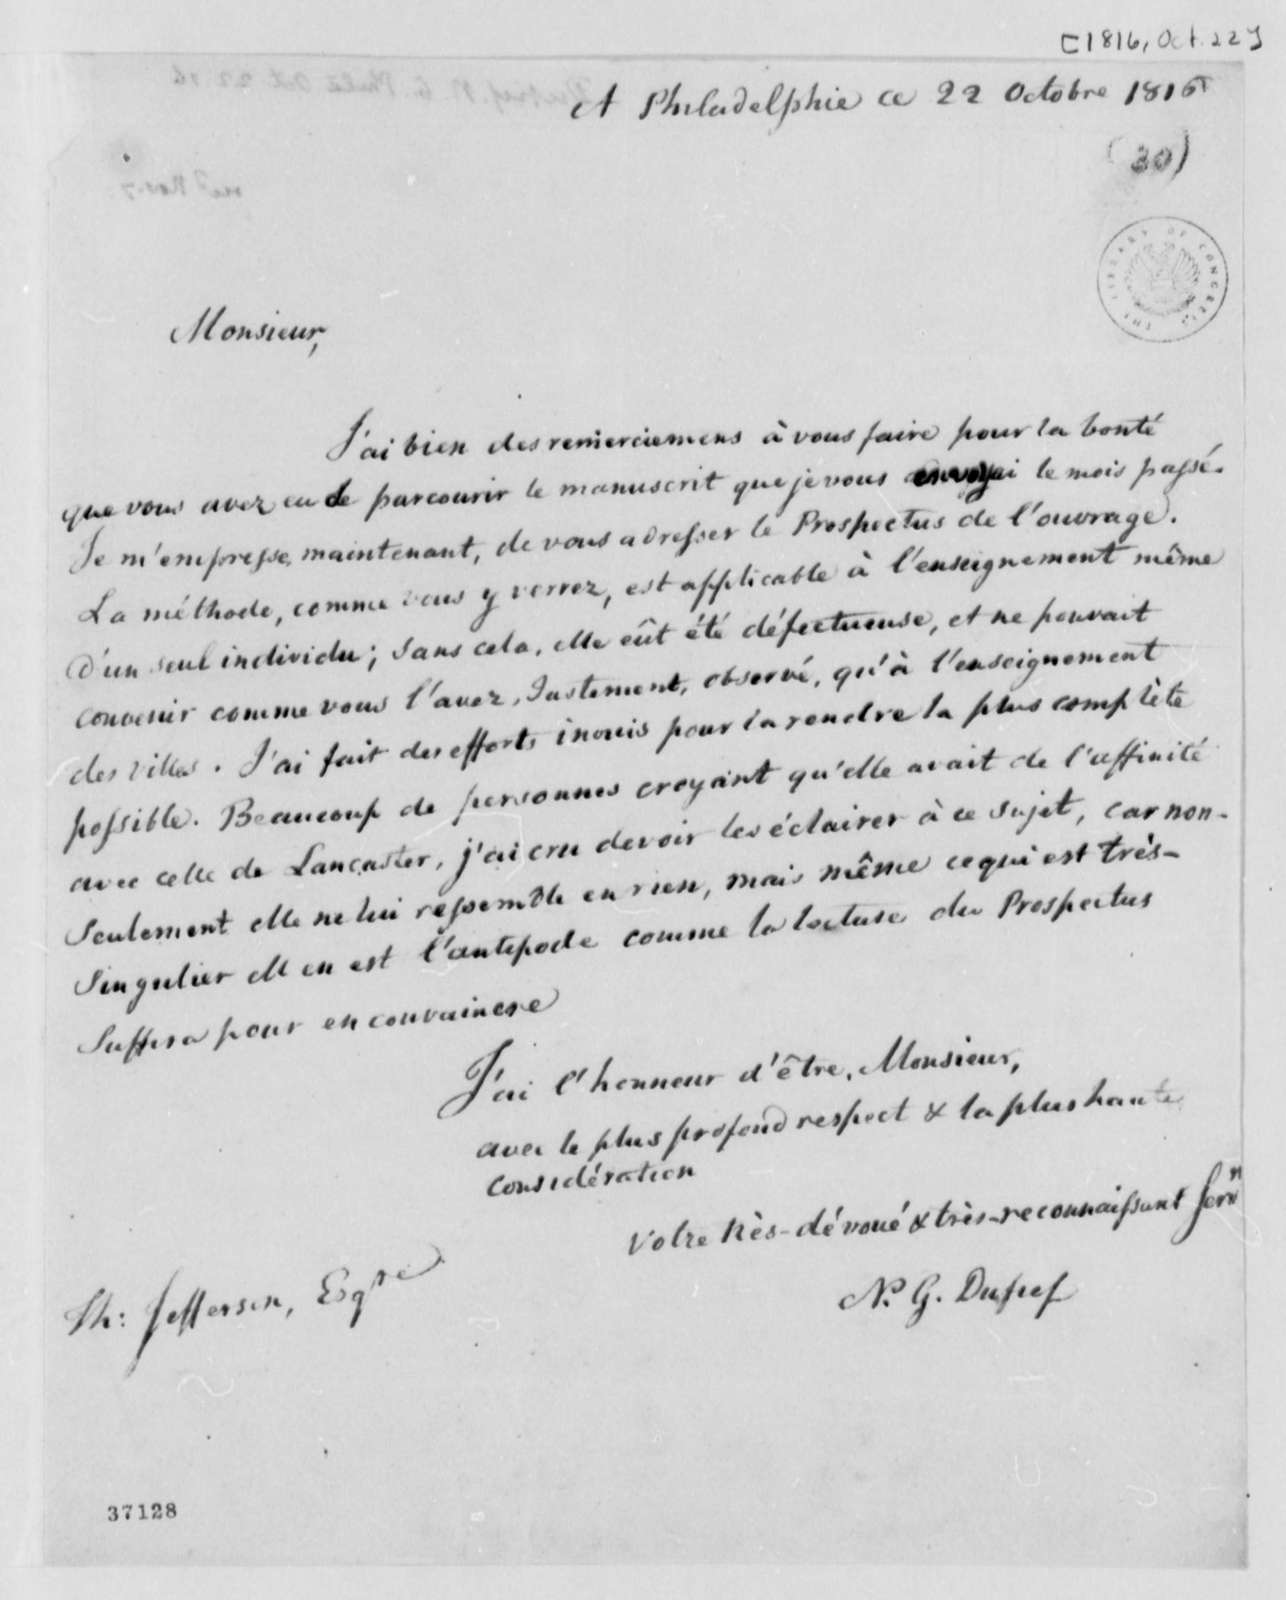 Nicholas Gouin Dufief to Joseph Milligan, October 22, 1816, in French